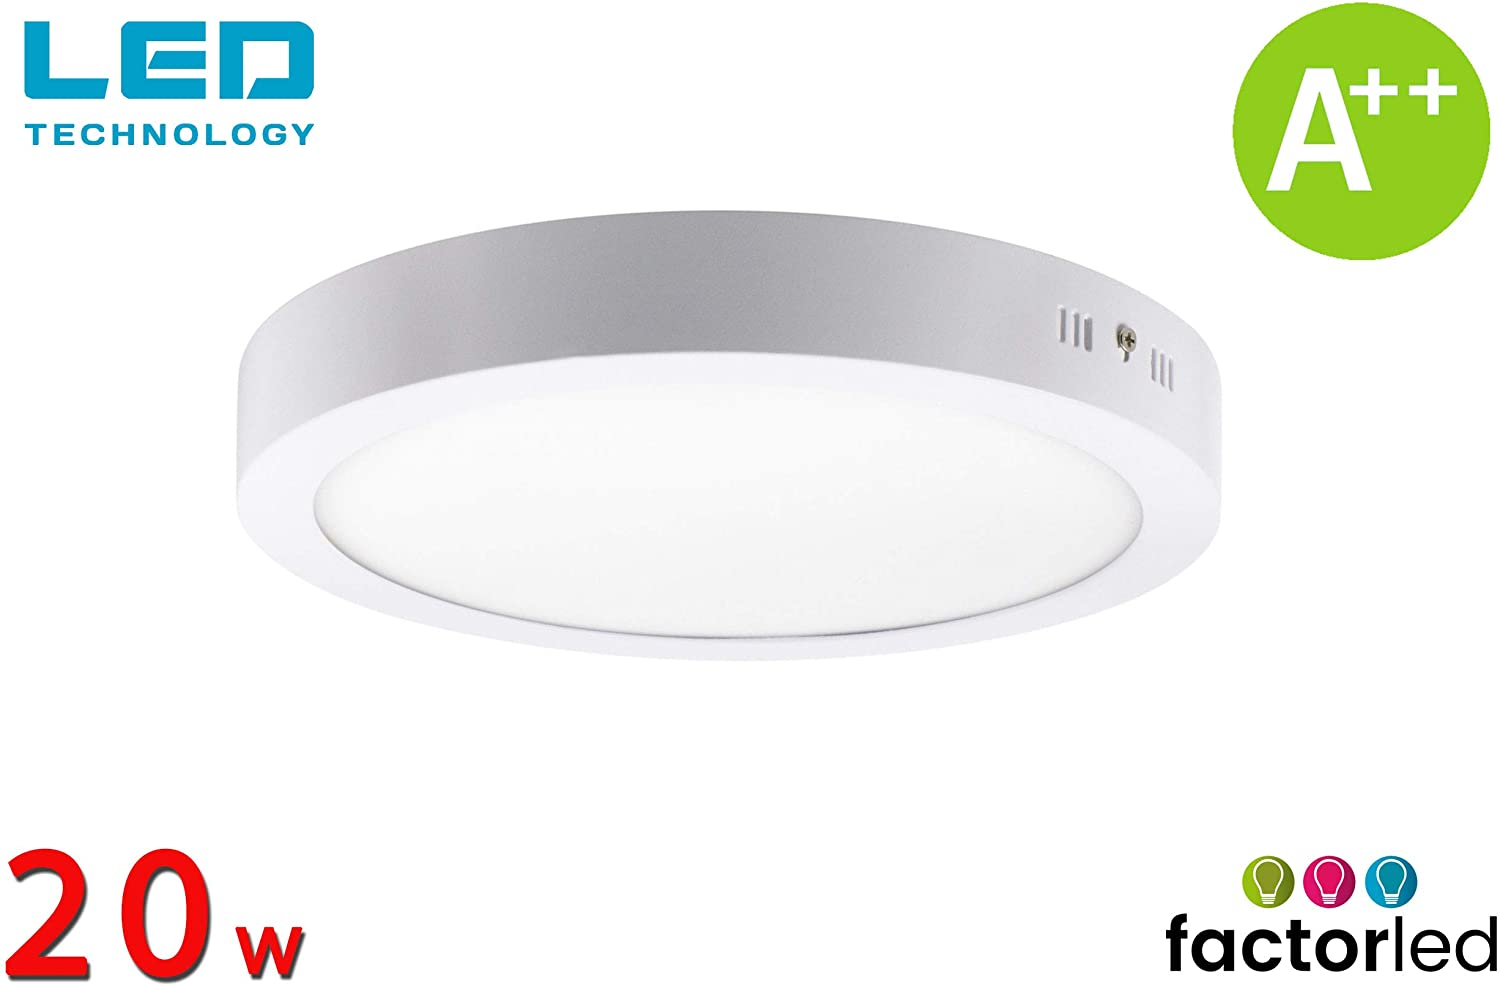 FactorLED ¡NOVEDAD! Downlight Panel Superficie LED Circular 20W, Plafón redondo para techo y pared, Placa interior, (3000K-4000K-6000K), [Clase de eficiencia energética A++] (Luz Cálida (3000K))